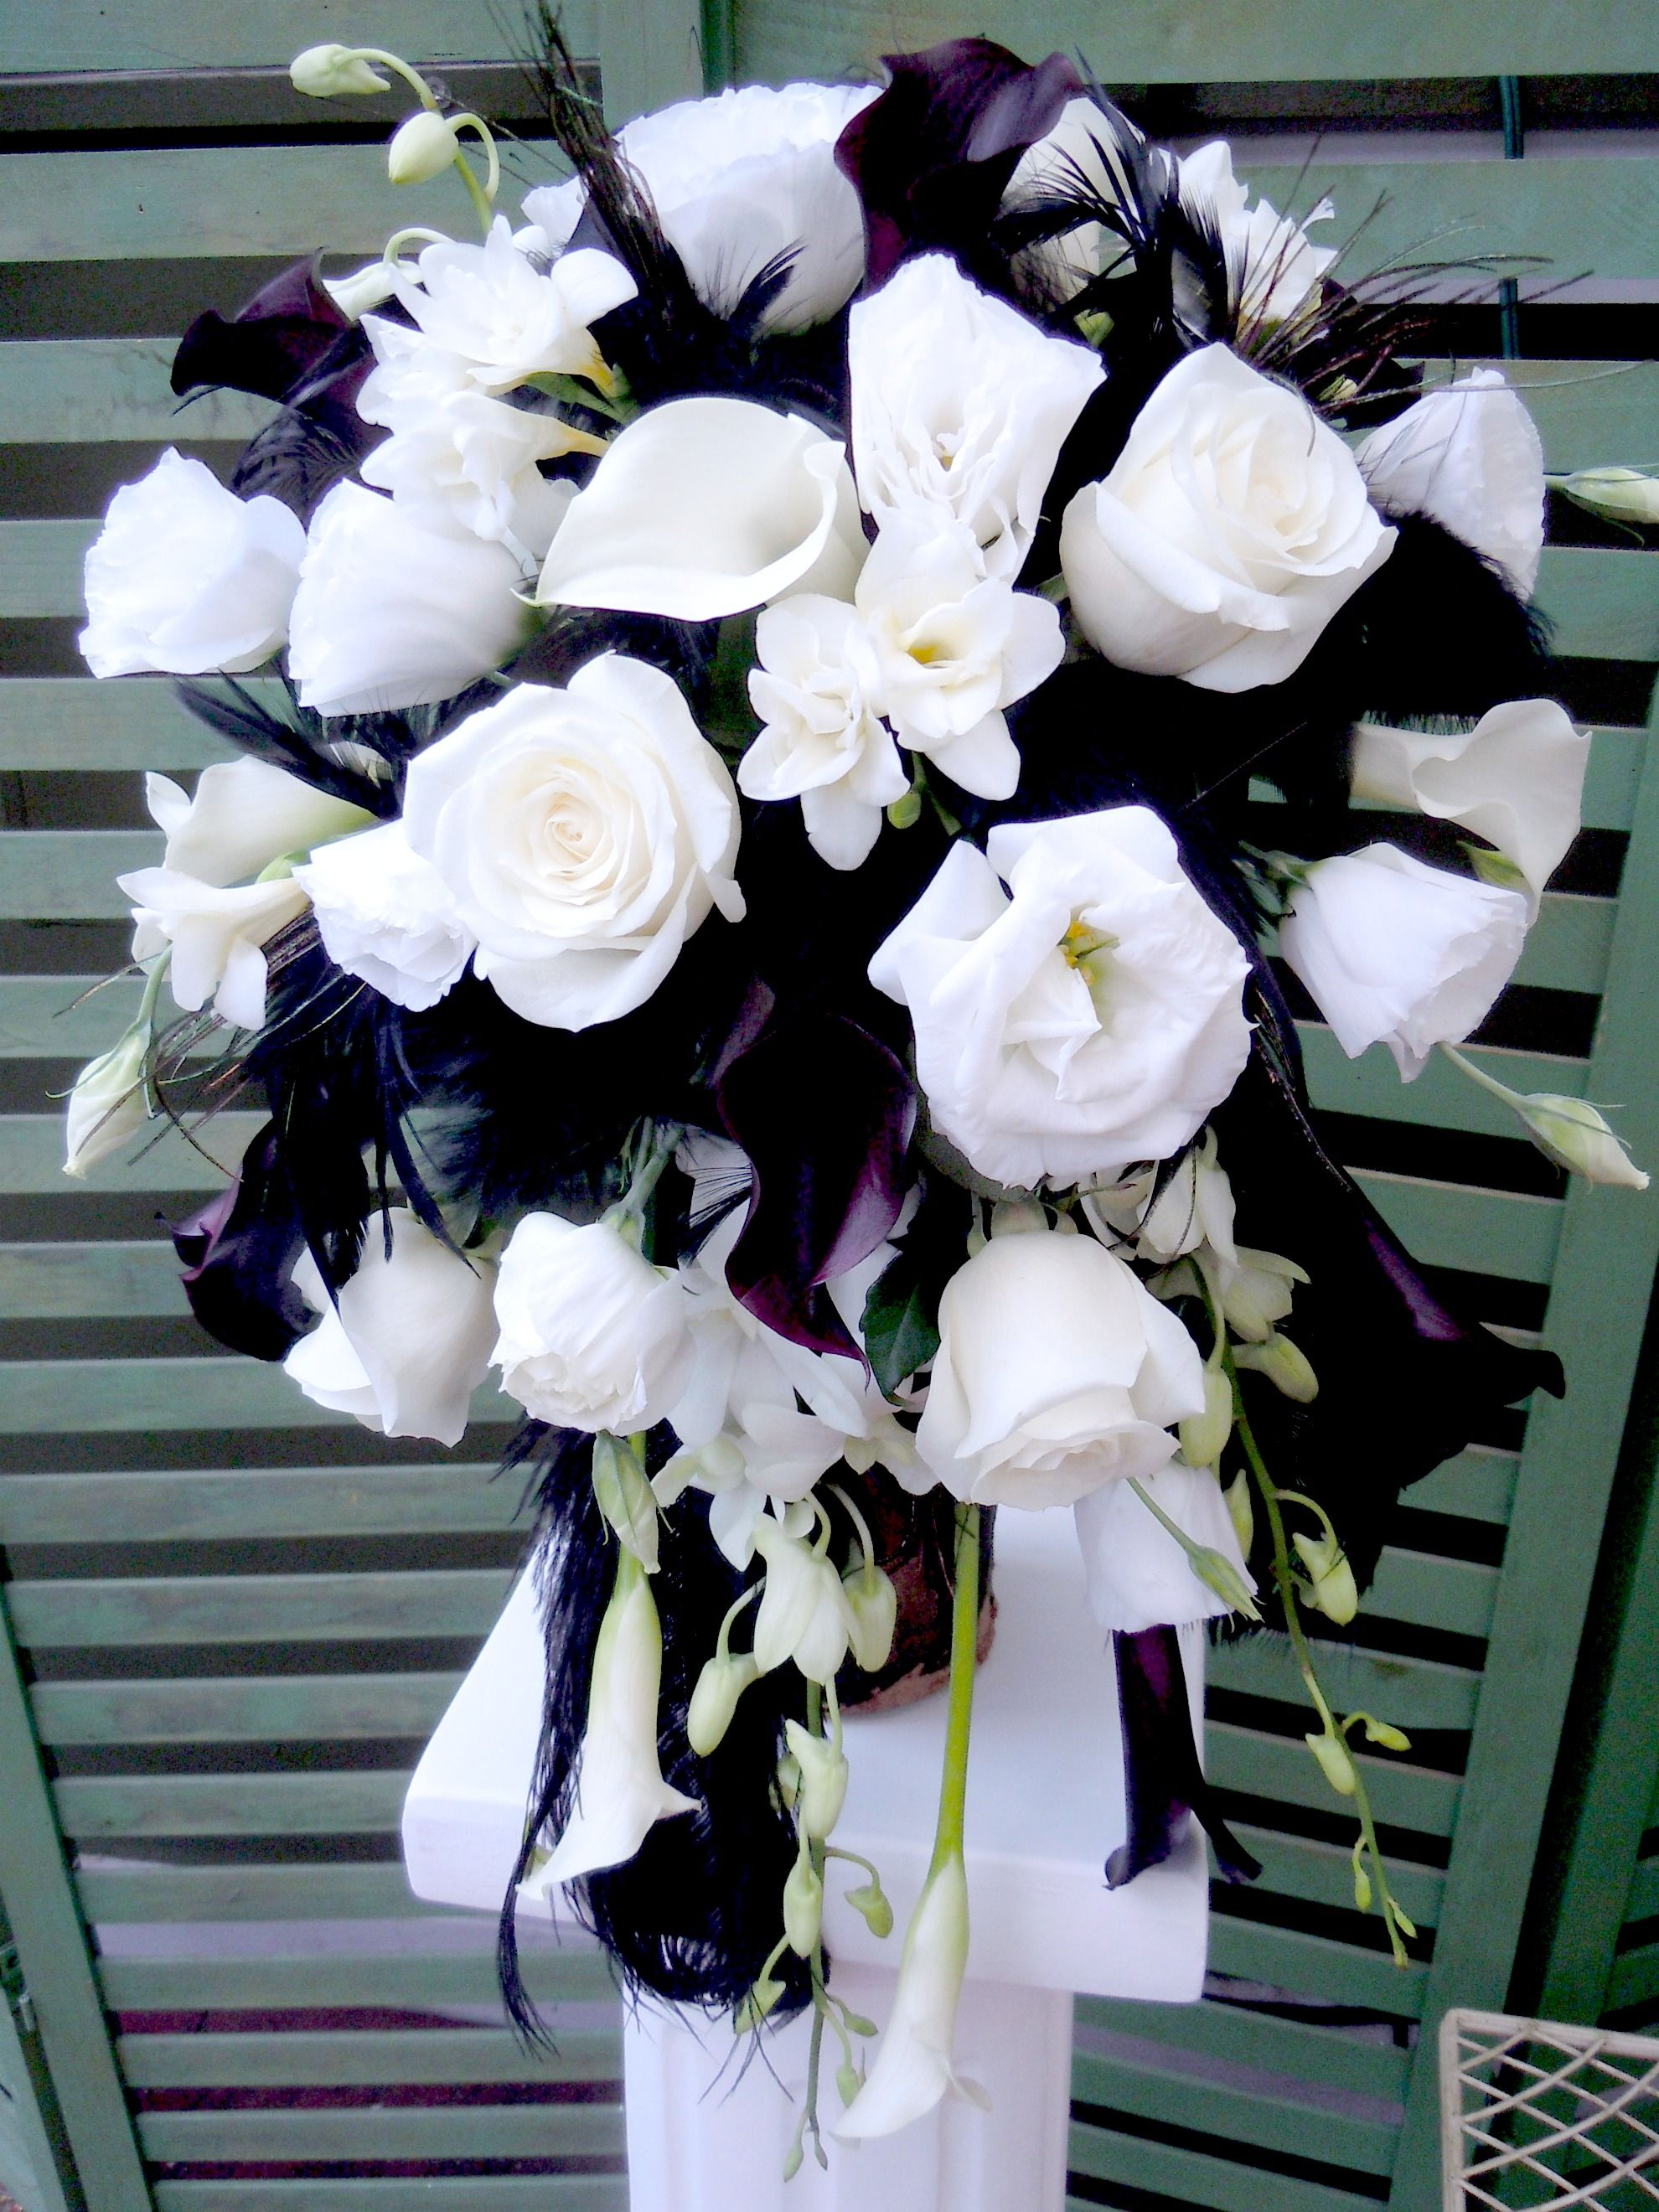 Black and white wedding flowers for a chic wedding decorations in black and white wedding flowers for a chic wedding decorations in 2015 flower is izmirmasajfo Choice Image